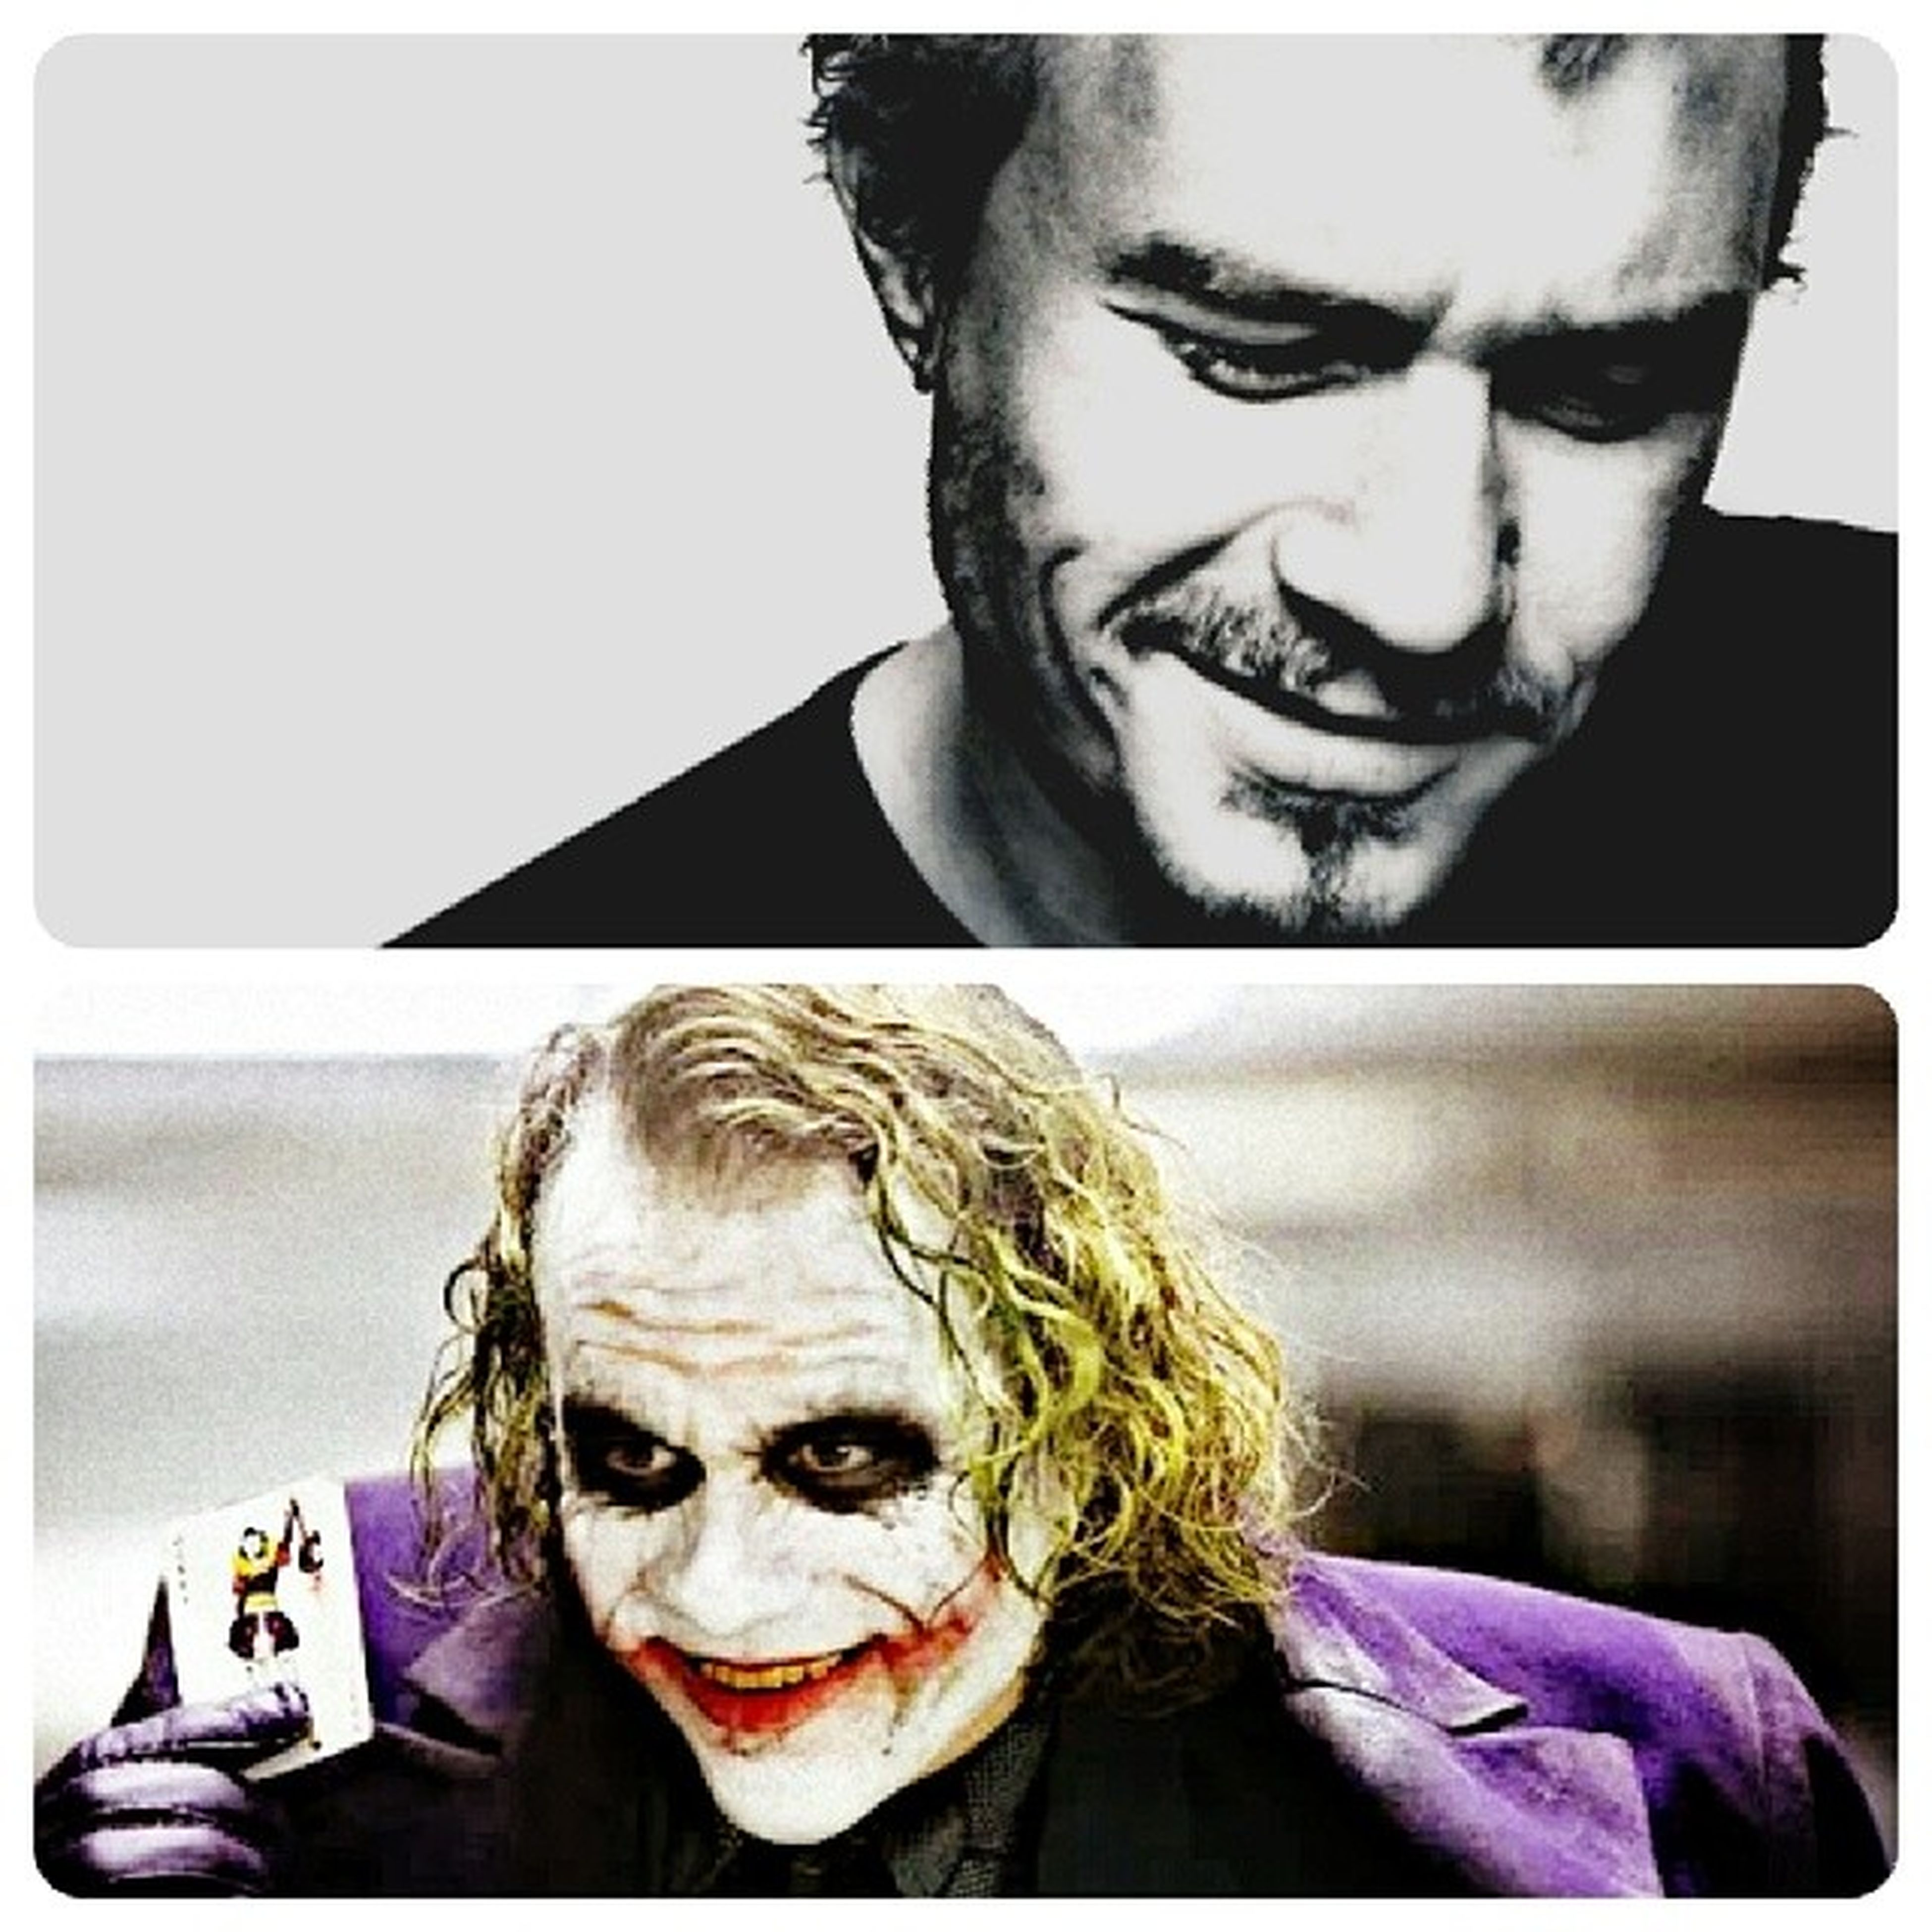 I just realised that Heath Ledger and my dad share the same birthday. My dad turned 53 years old yesterday. Heath Ledger would have been 35. HappyBirthdayHeathLedger